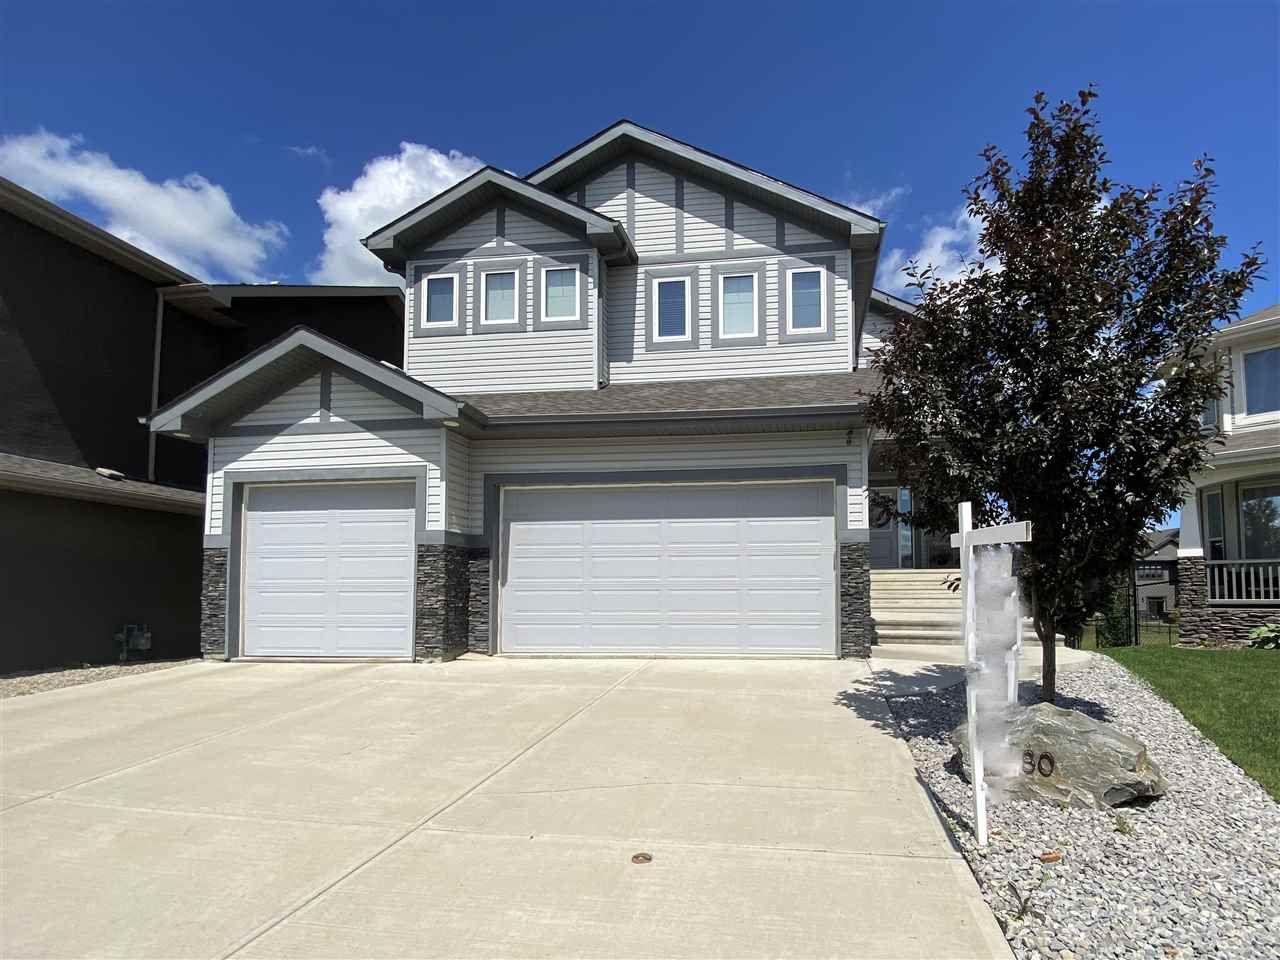 Main Photo: 80 NEWGATE Way: St. Albert House for sale : MLS®# E4204826